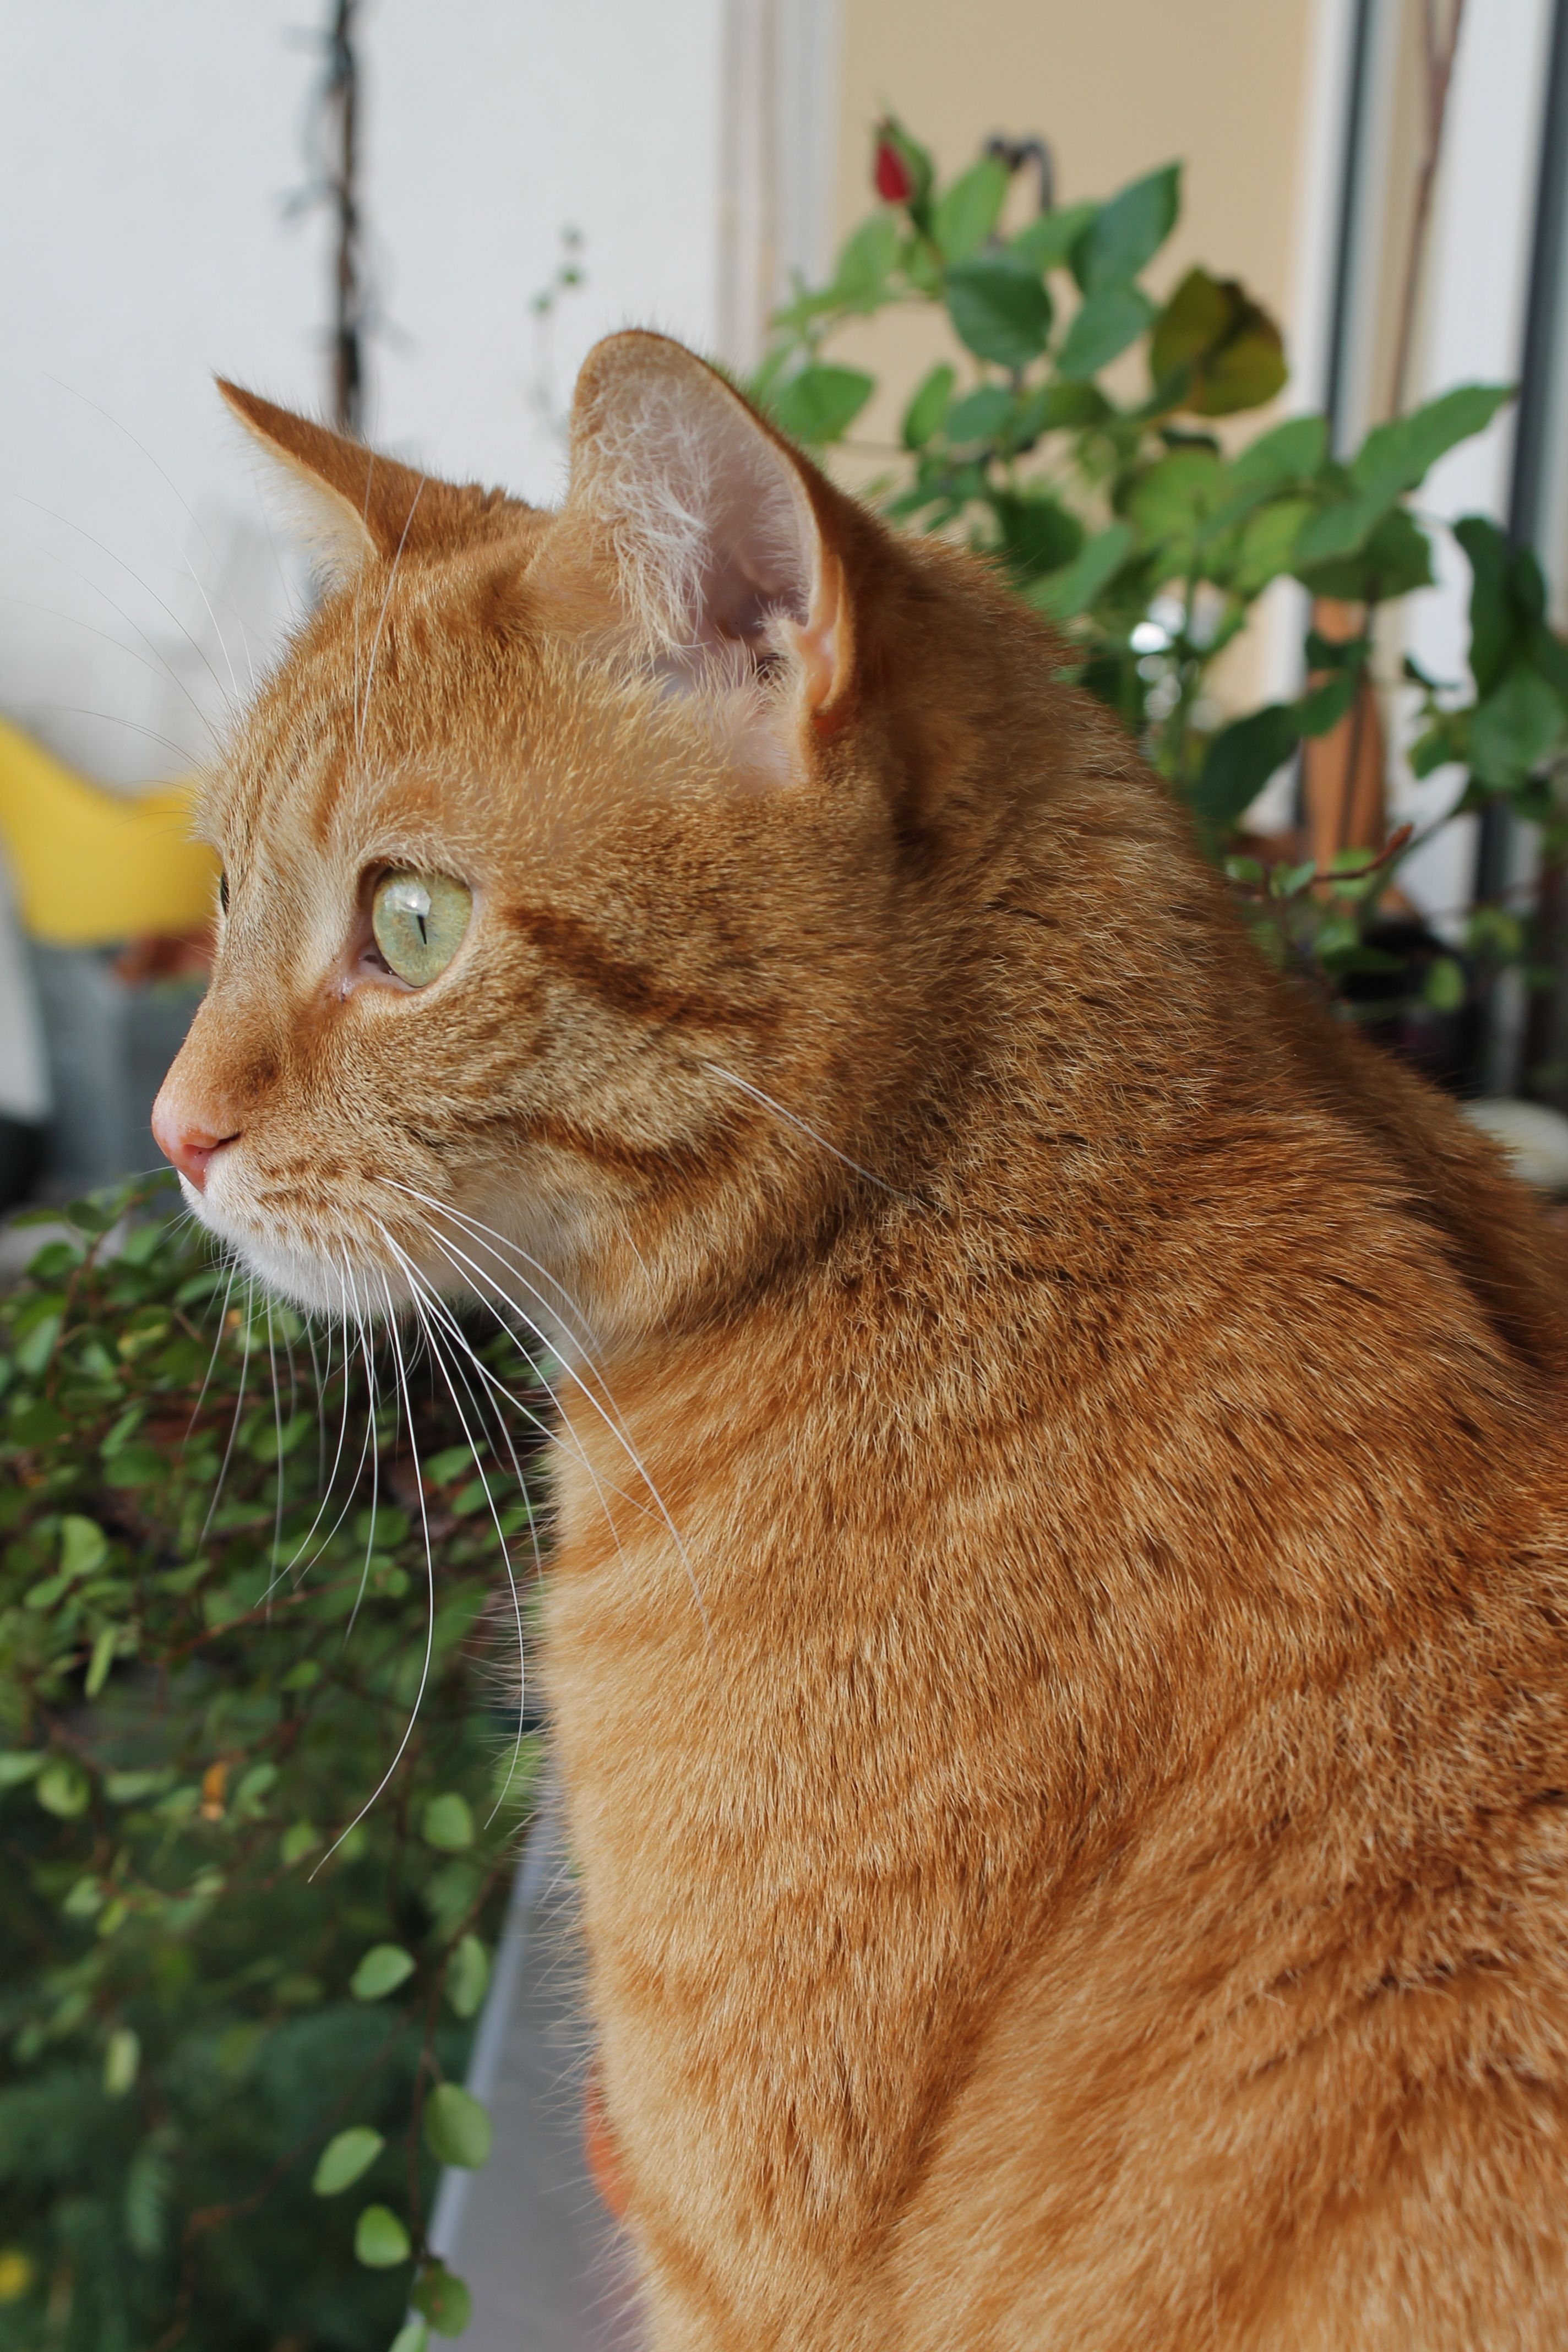 He loves bird watching & I love his green eyes! (Ginger